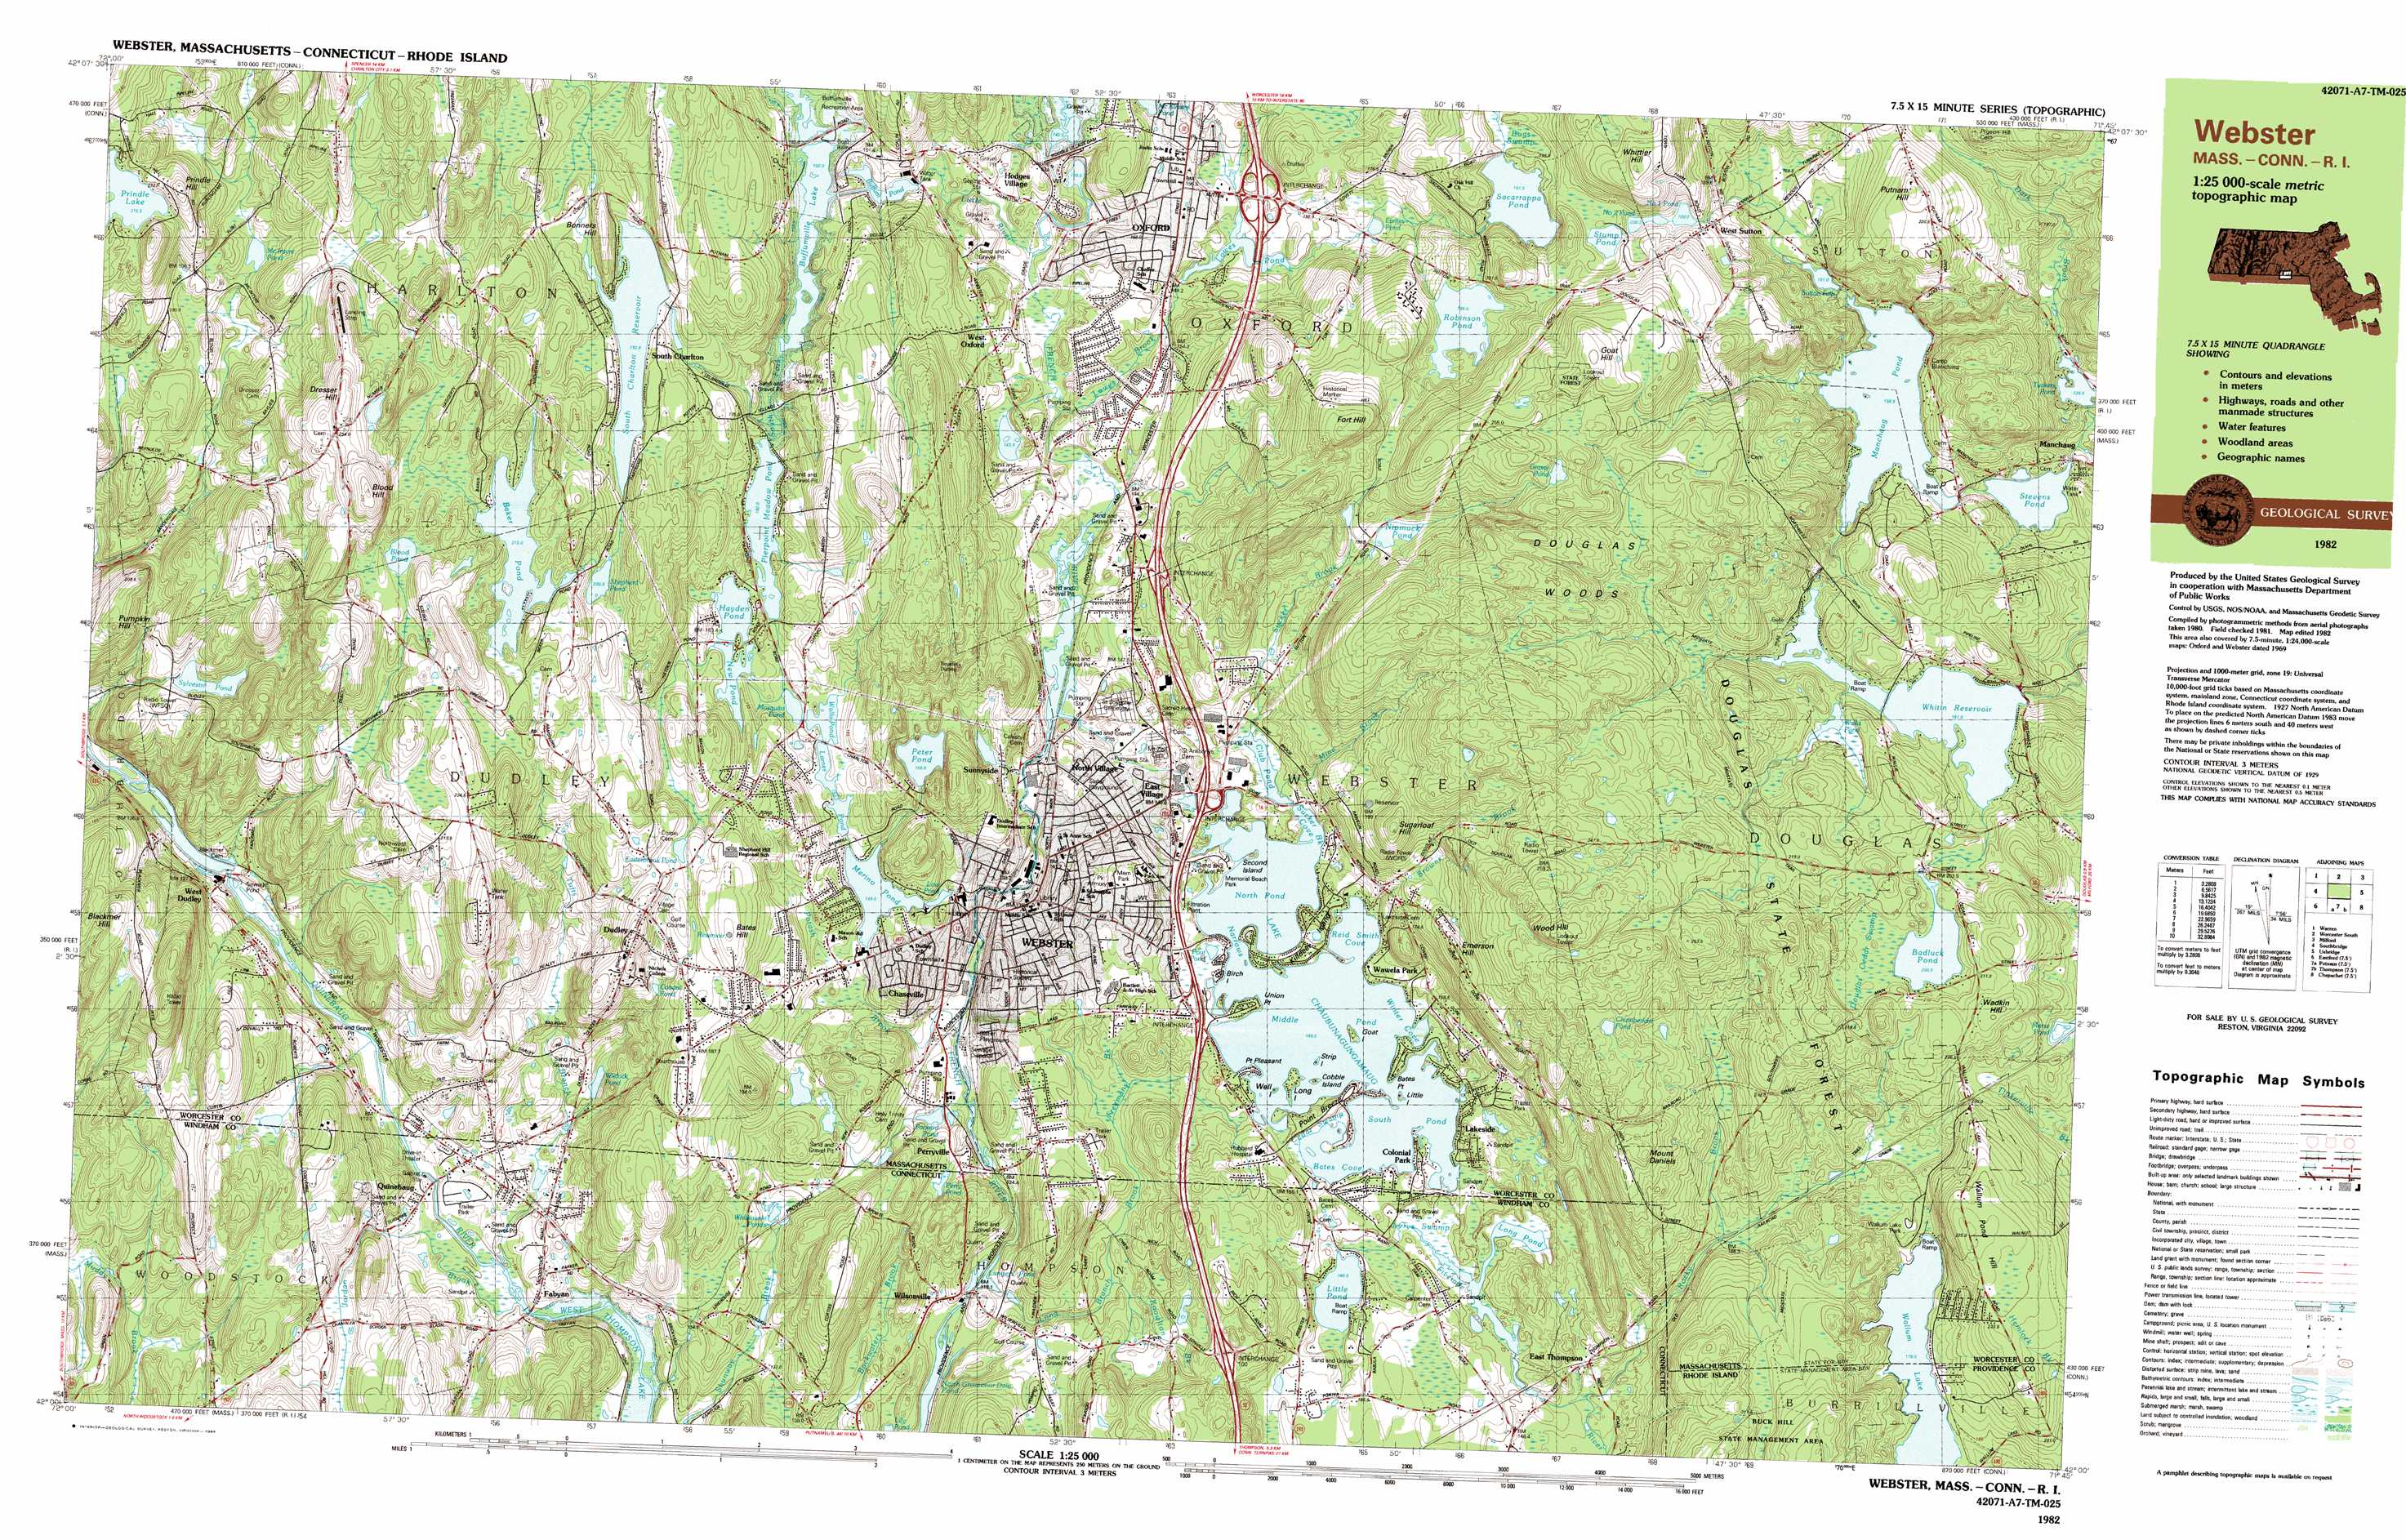 Oxford topographic map, MA, RI, CT - USGS Topo Quad 42071a7